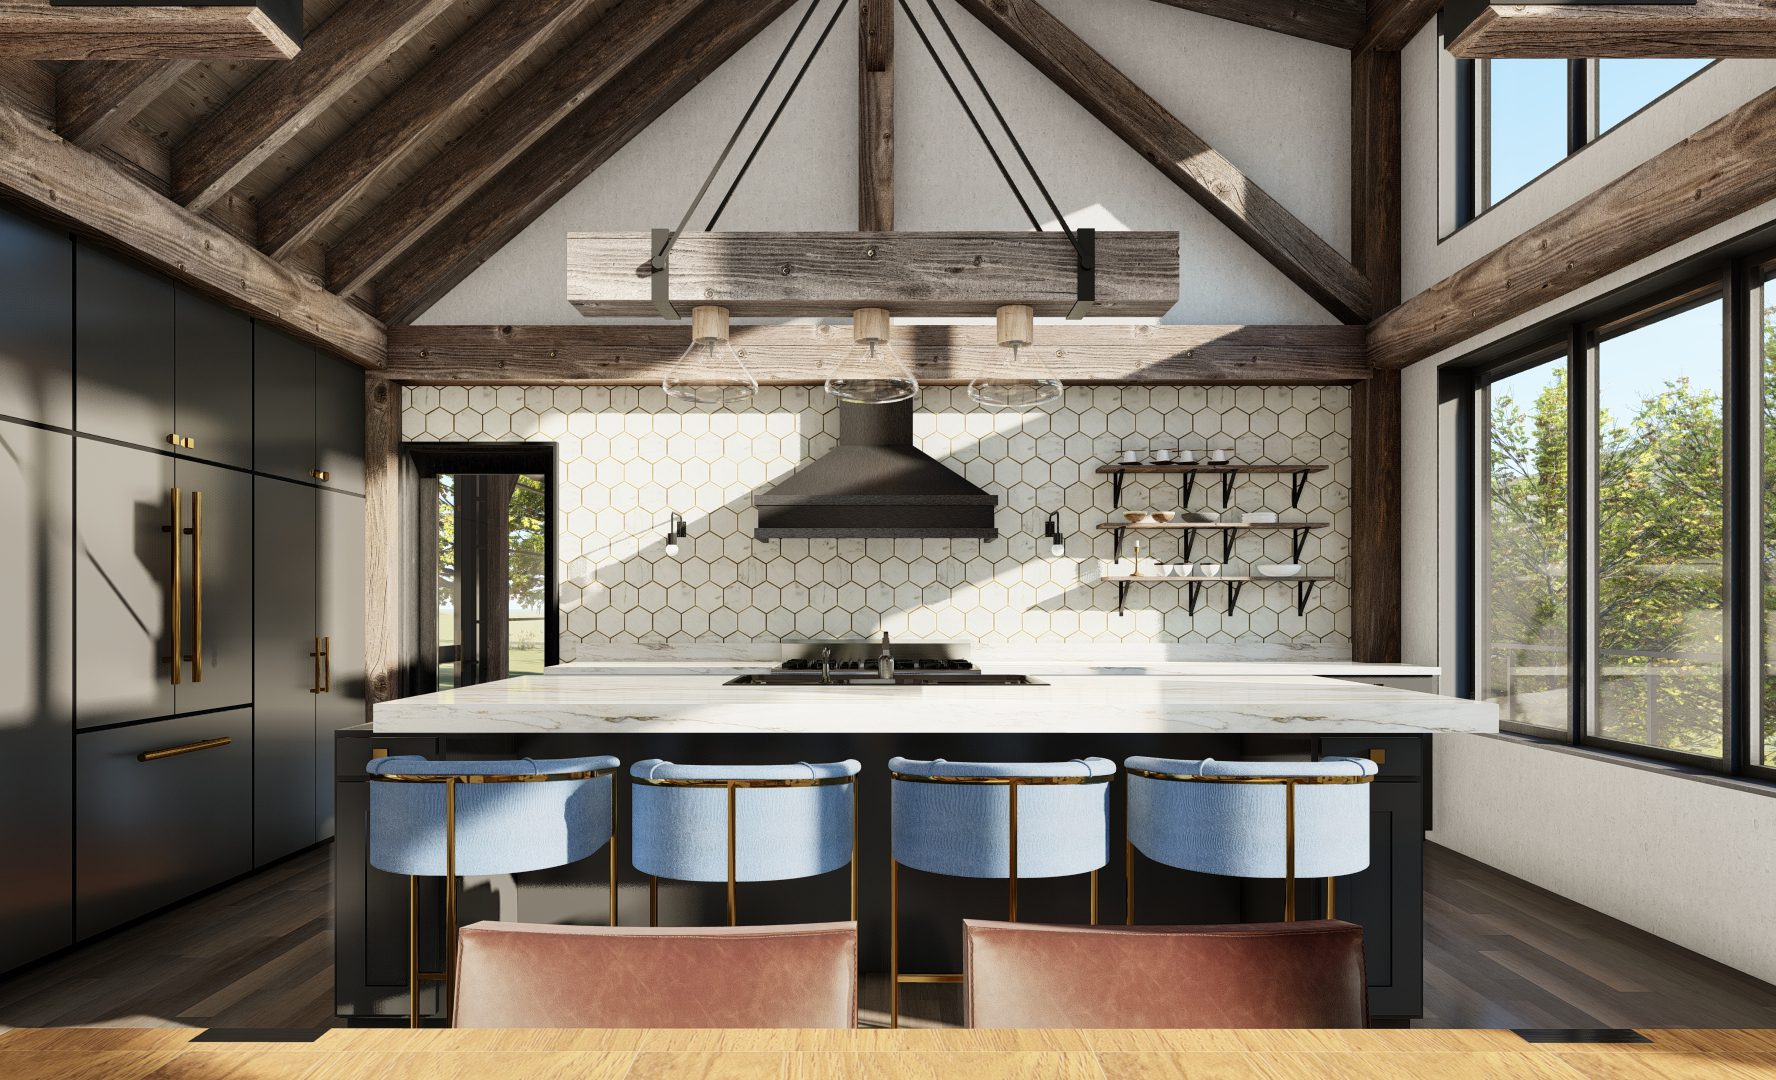 Normerica Timber Frames, House Plan, The Redstone 3920, Interior, Kitchen